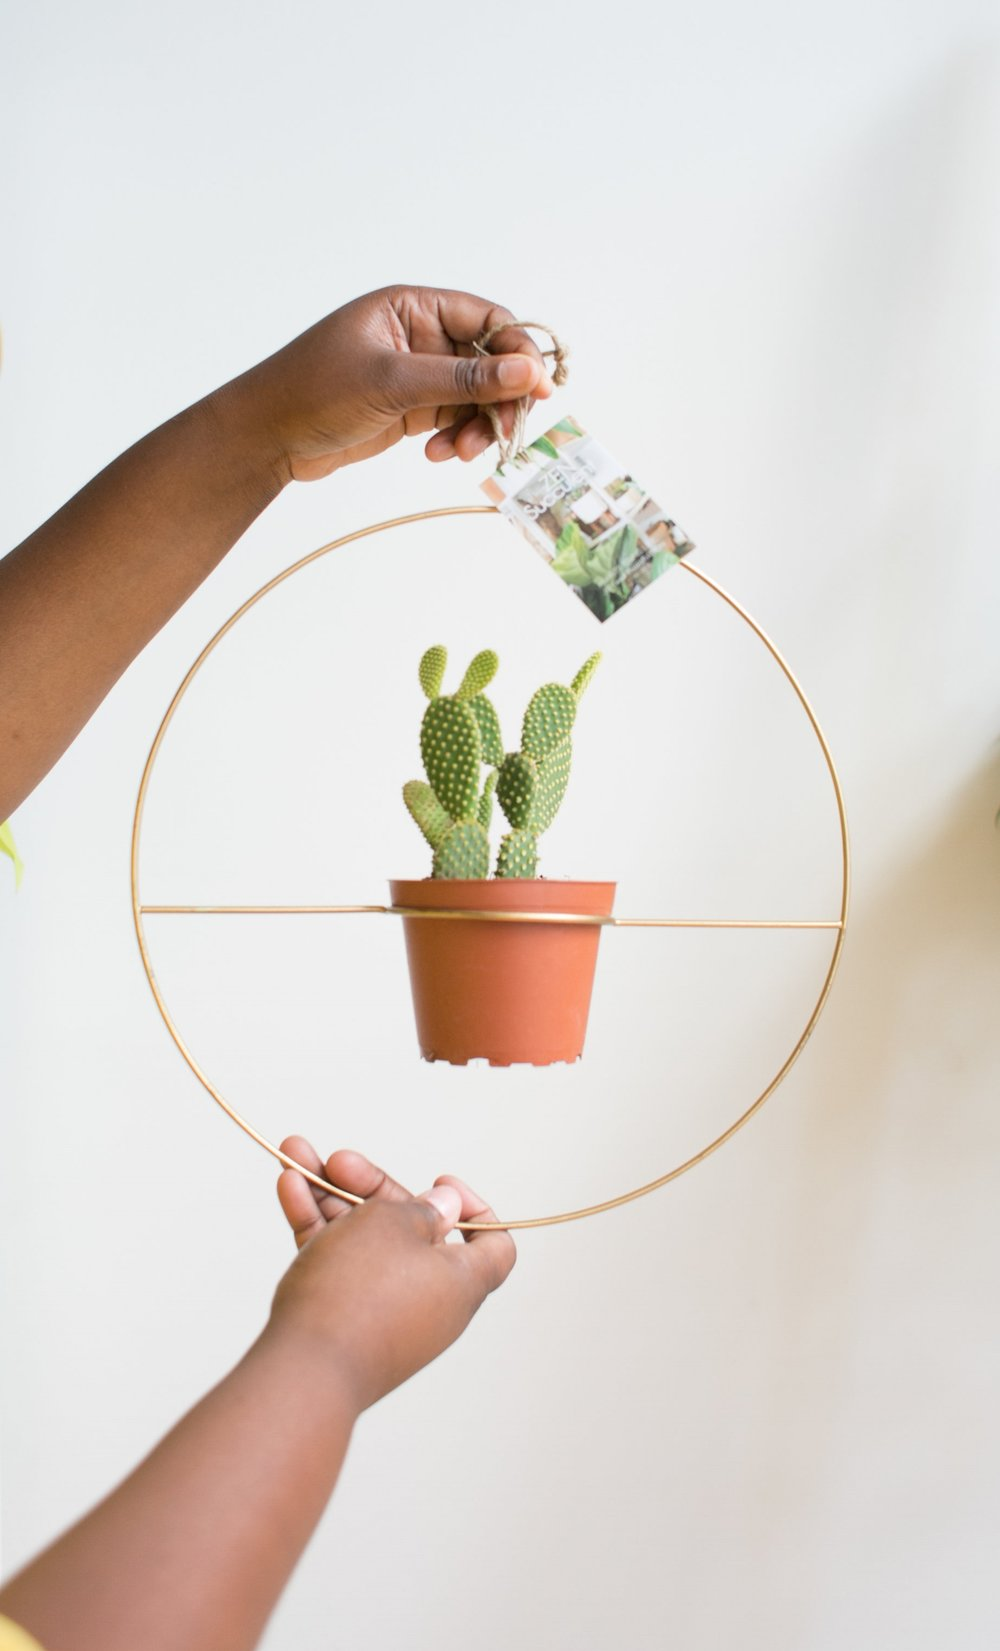 The Bunny Ear Cactus ( Opuntia microdasys ) is deceivingly sweet. Instead of individual spines, this species has short, barbed hairs that grow in groups, called glochids.  They are one of the fastest growing species of cacti, making them fun to watch get larger over time.